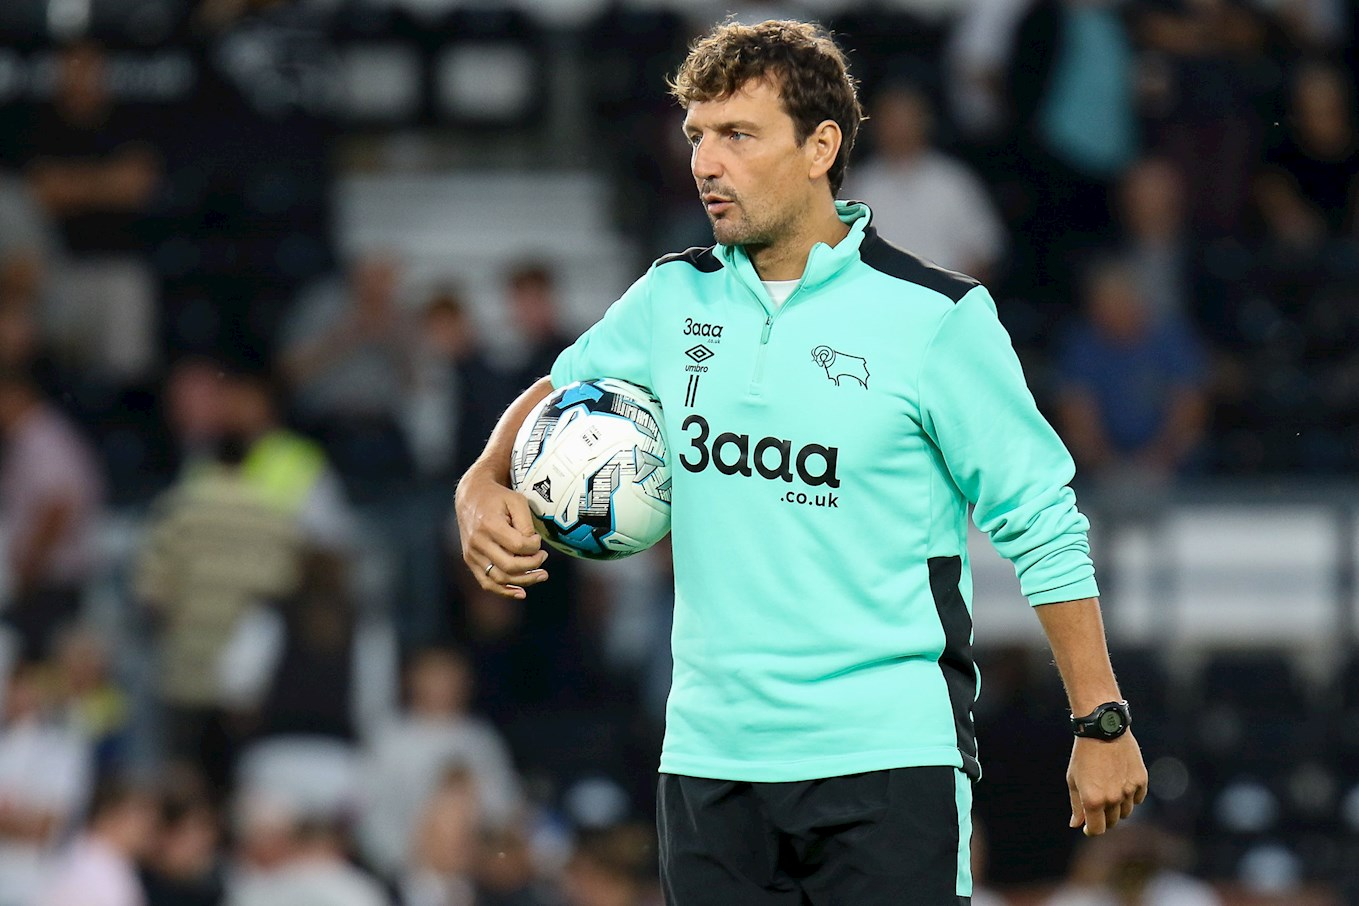 Inigo Idiakez in his previous job as Derby County's first-team coach